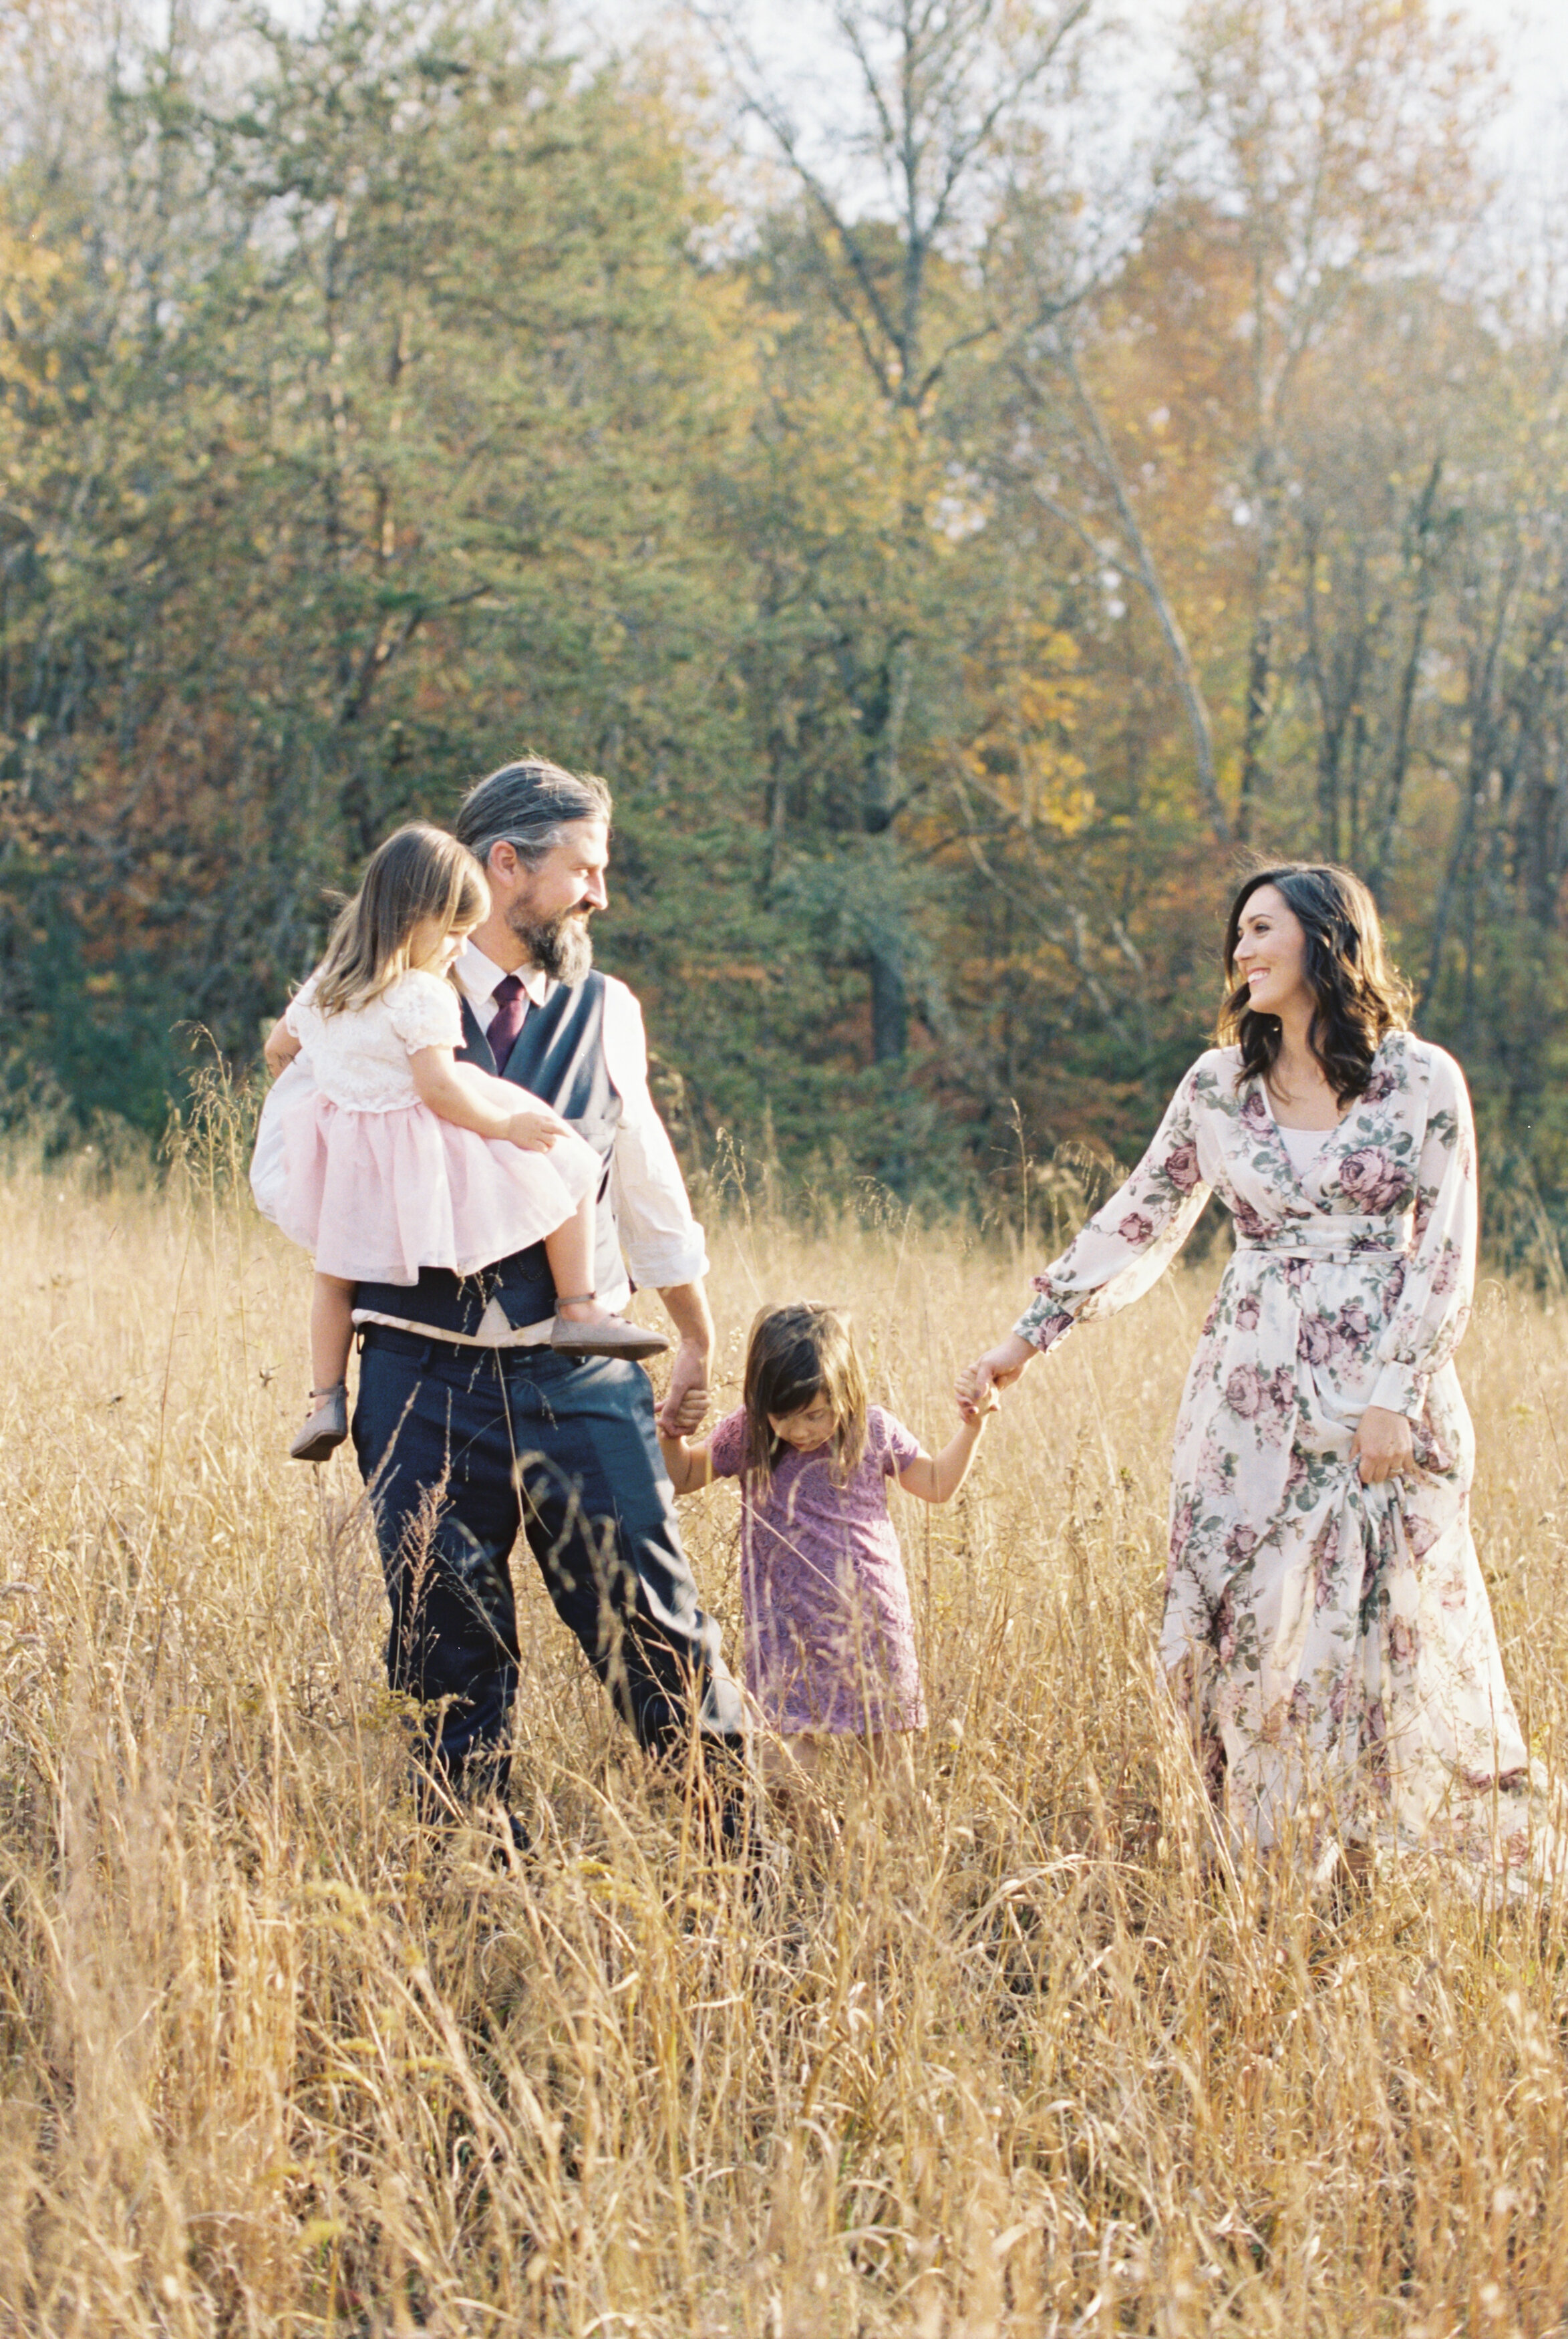 Sharp_Family_Knoxville_Film_Abigail_Malone_Photography-39.jpg